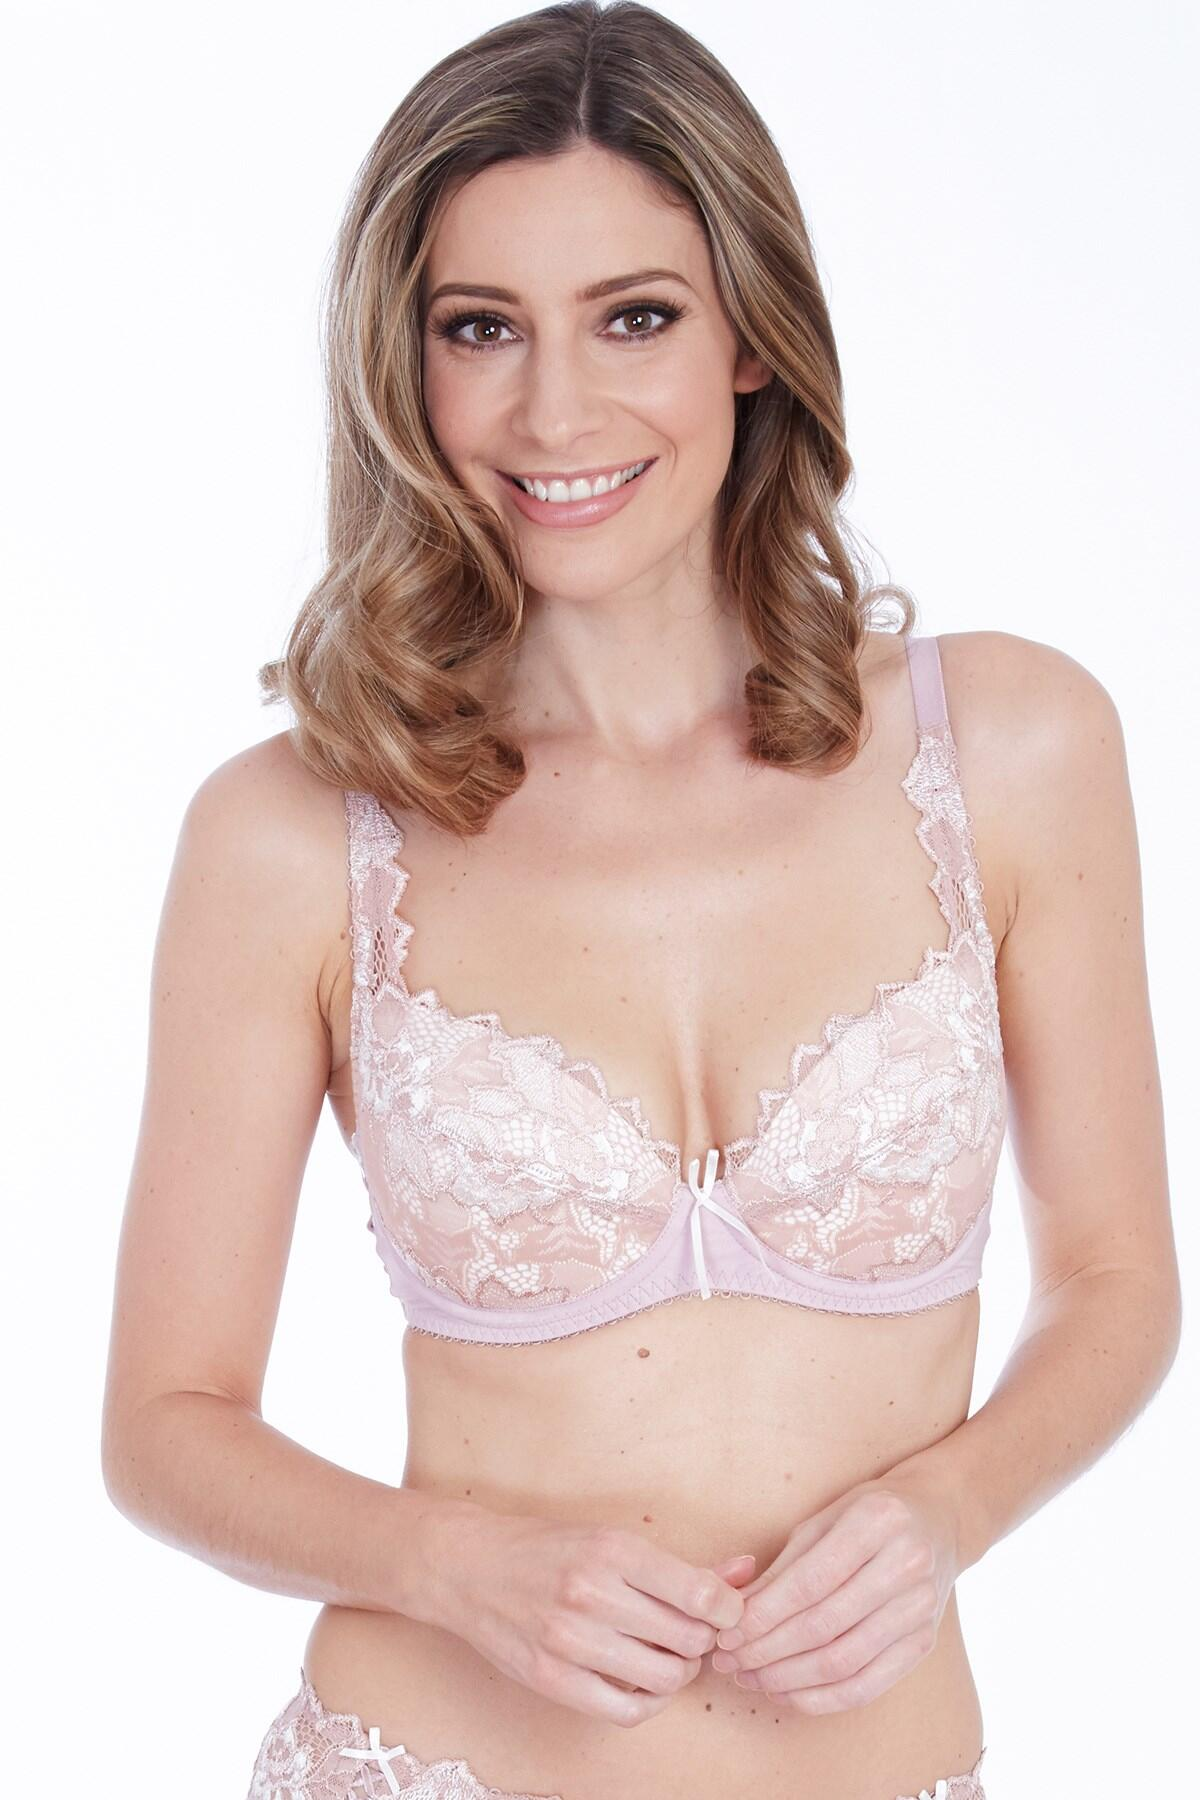 Fiore Plunge Bra - Rose Gold/Ivory